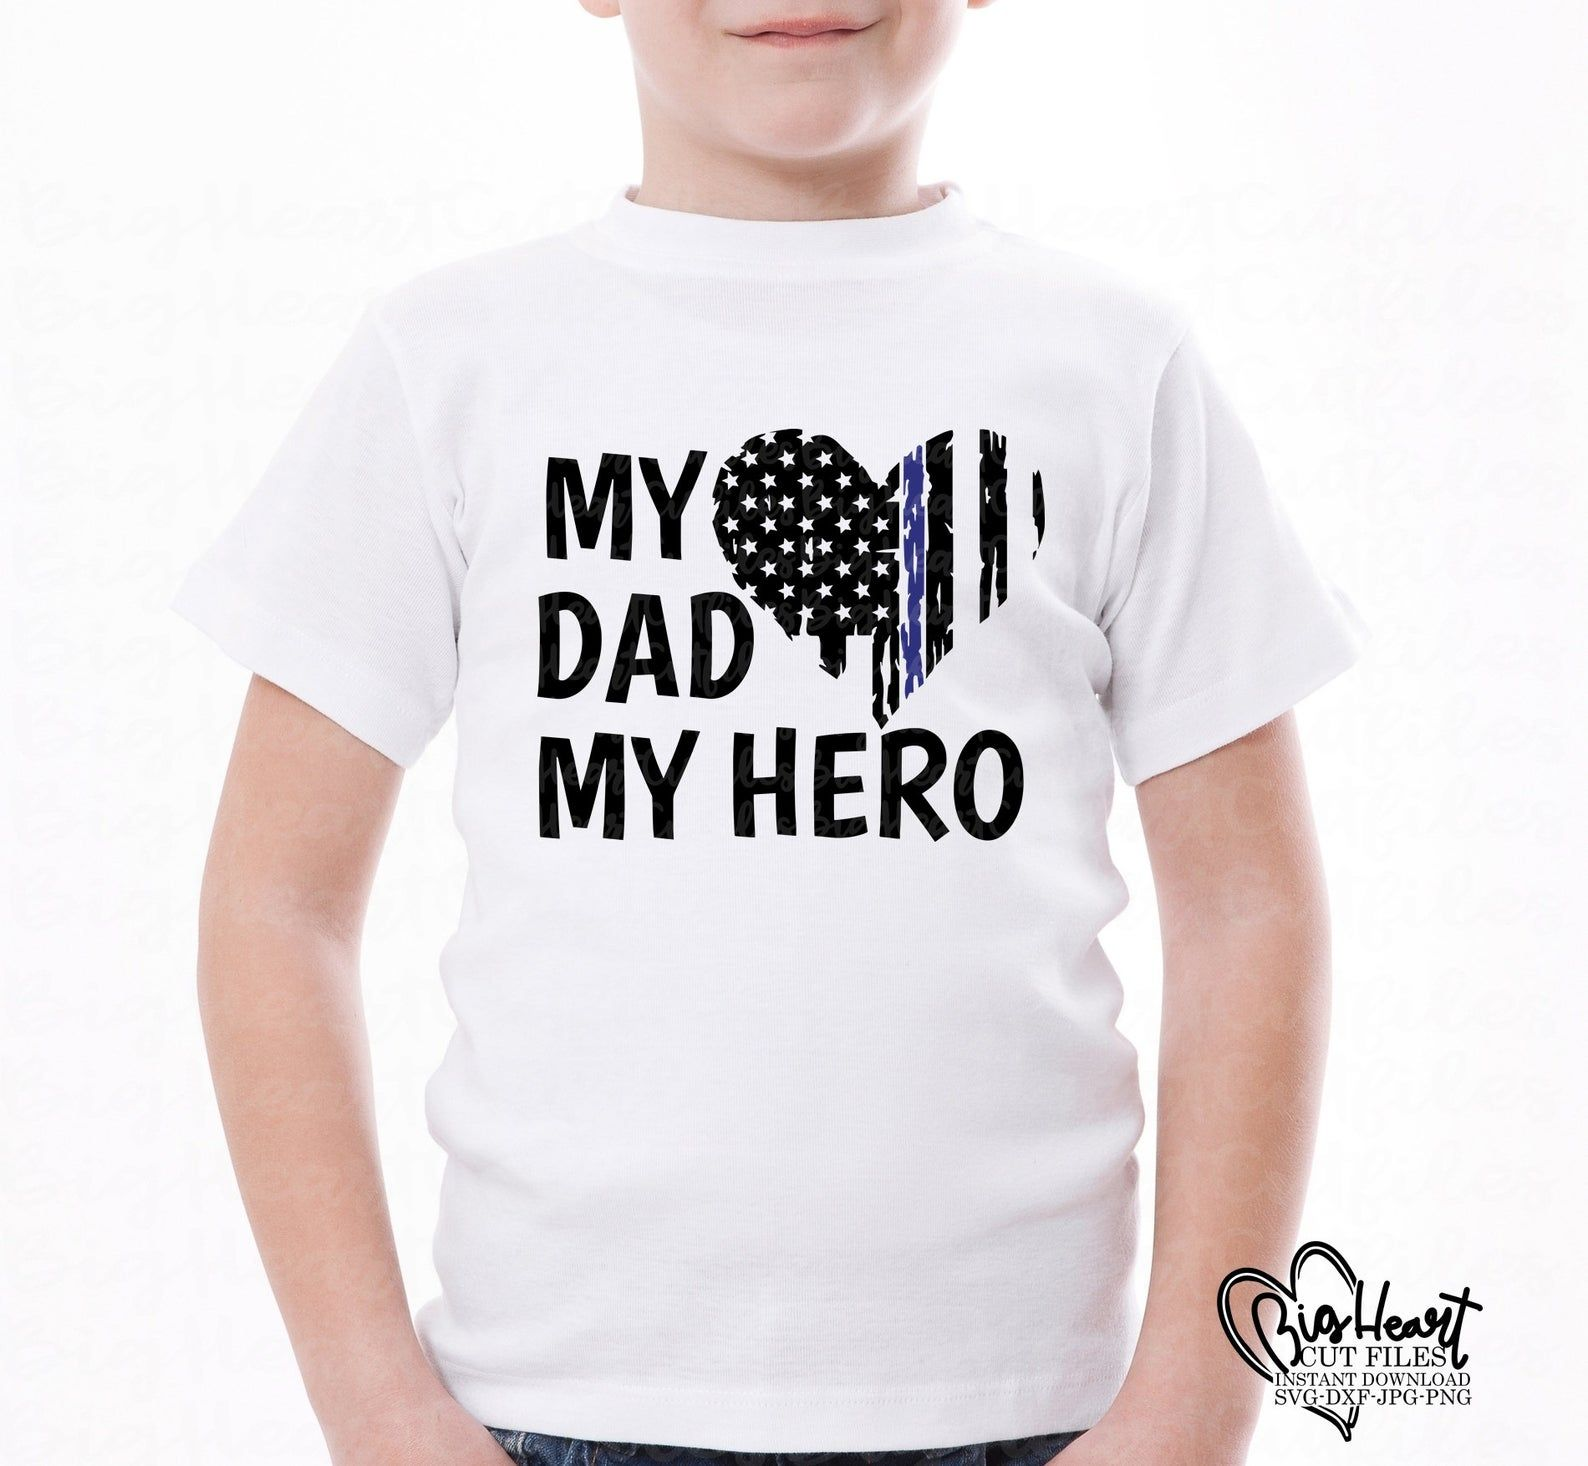 Police My Dad My Hero svg,png,jpg,dxf,thin blue line flag